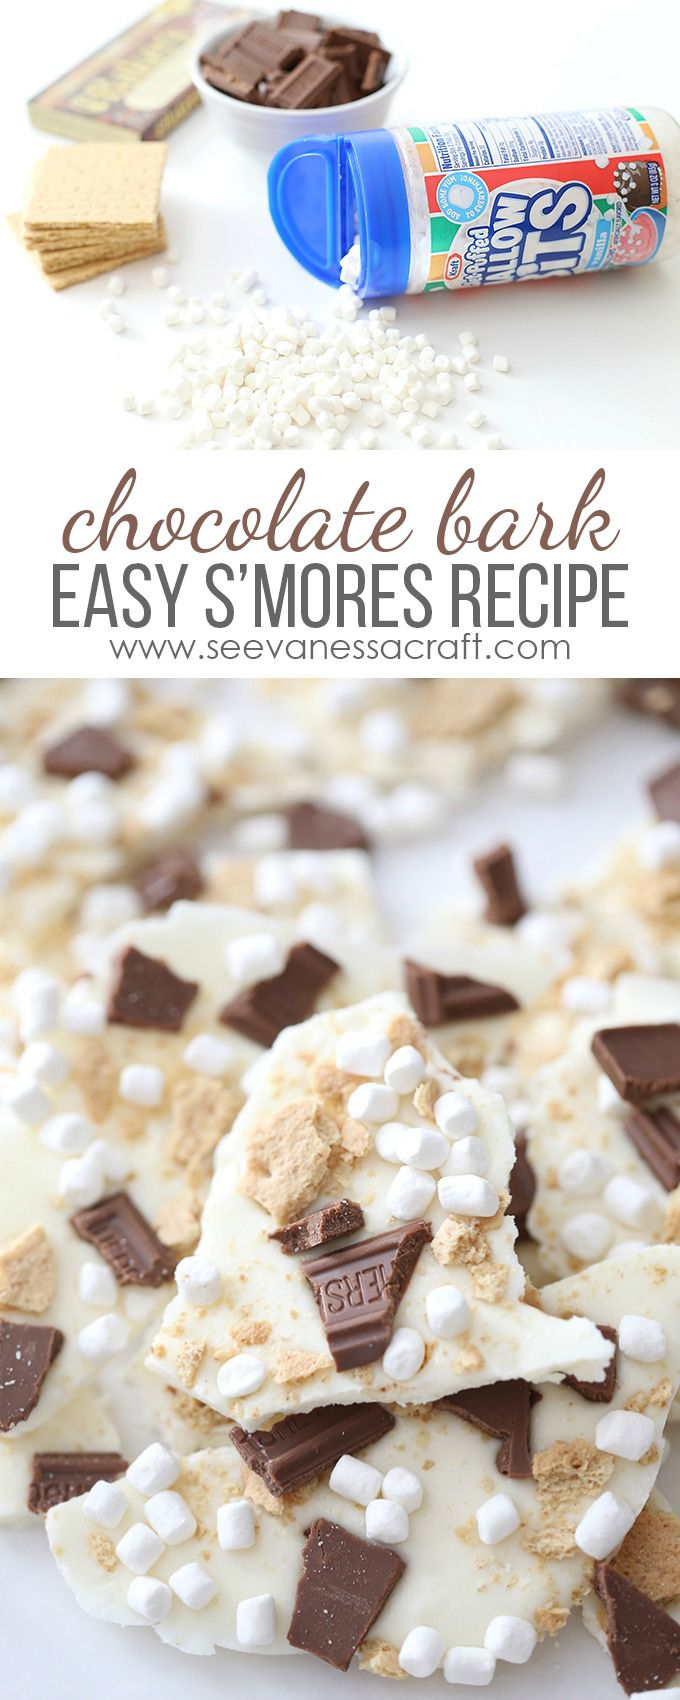 Make a batch of S'mores Chocolate Bark for a camping themed party treat or rustic wedding party favor. Easy marshmallow recipe! @kraftjetpuffed #ad #JetPuffed #JetBuffedBlogger